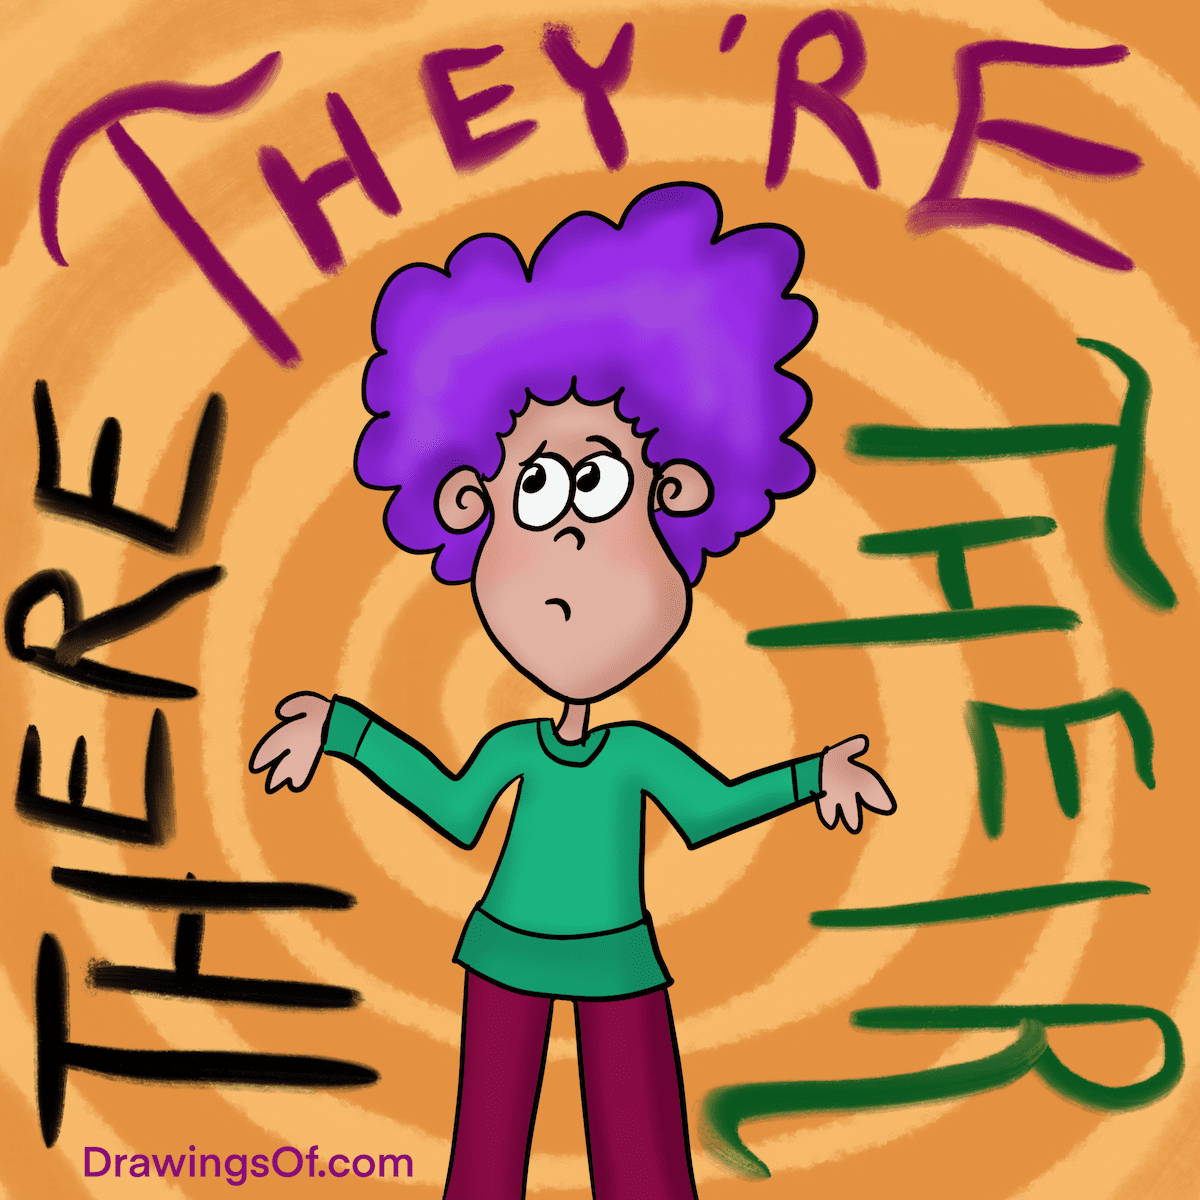 There they're or their